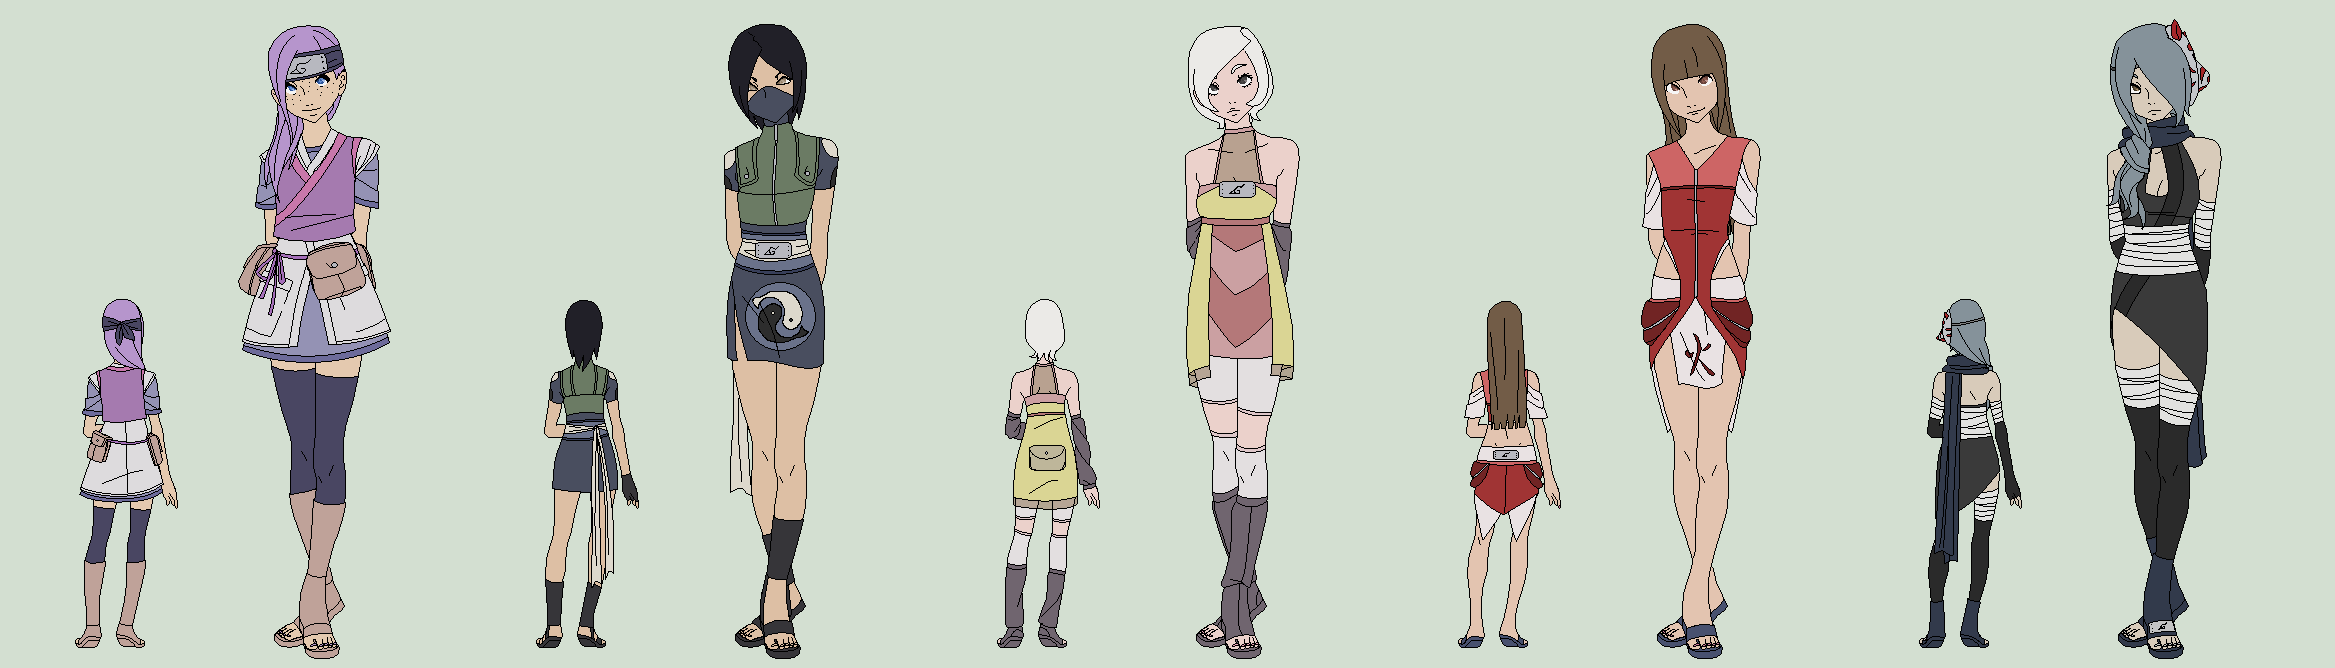 Naruto adopts leaf villageclosed by pointadoptss on deviantart naruto adopts leaf villageclosed by pointadoptss biocorpaavc Image collections